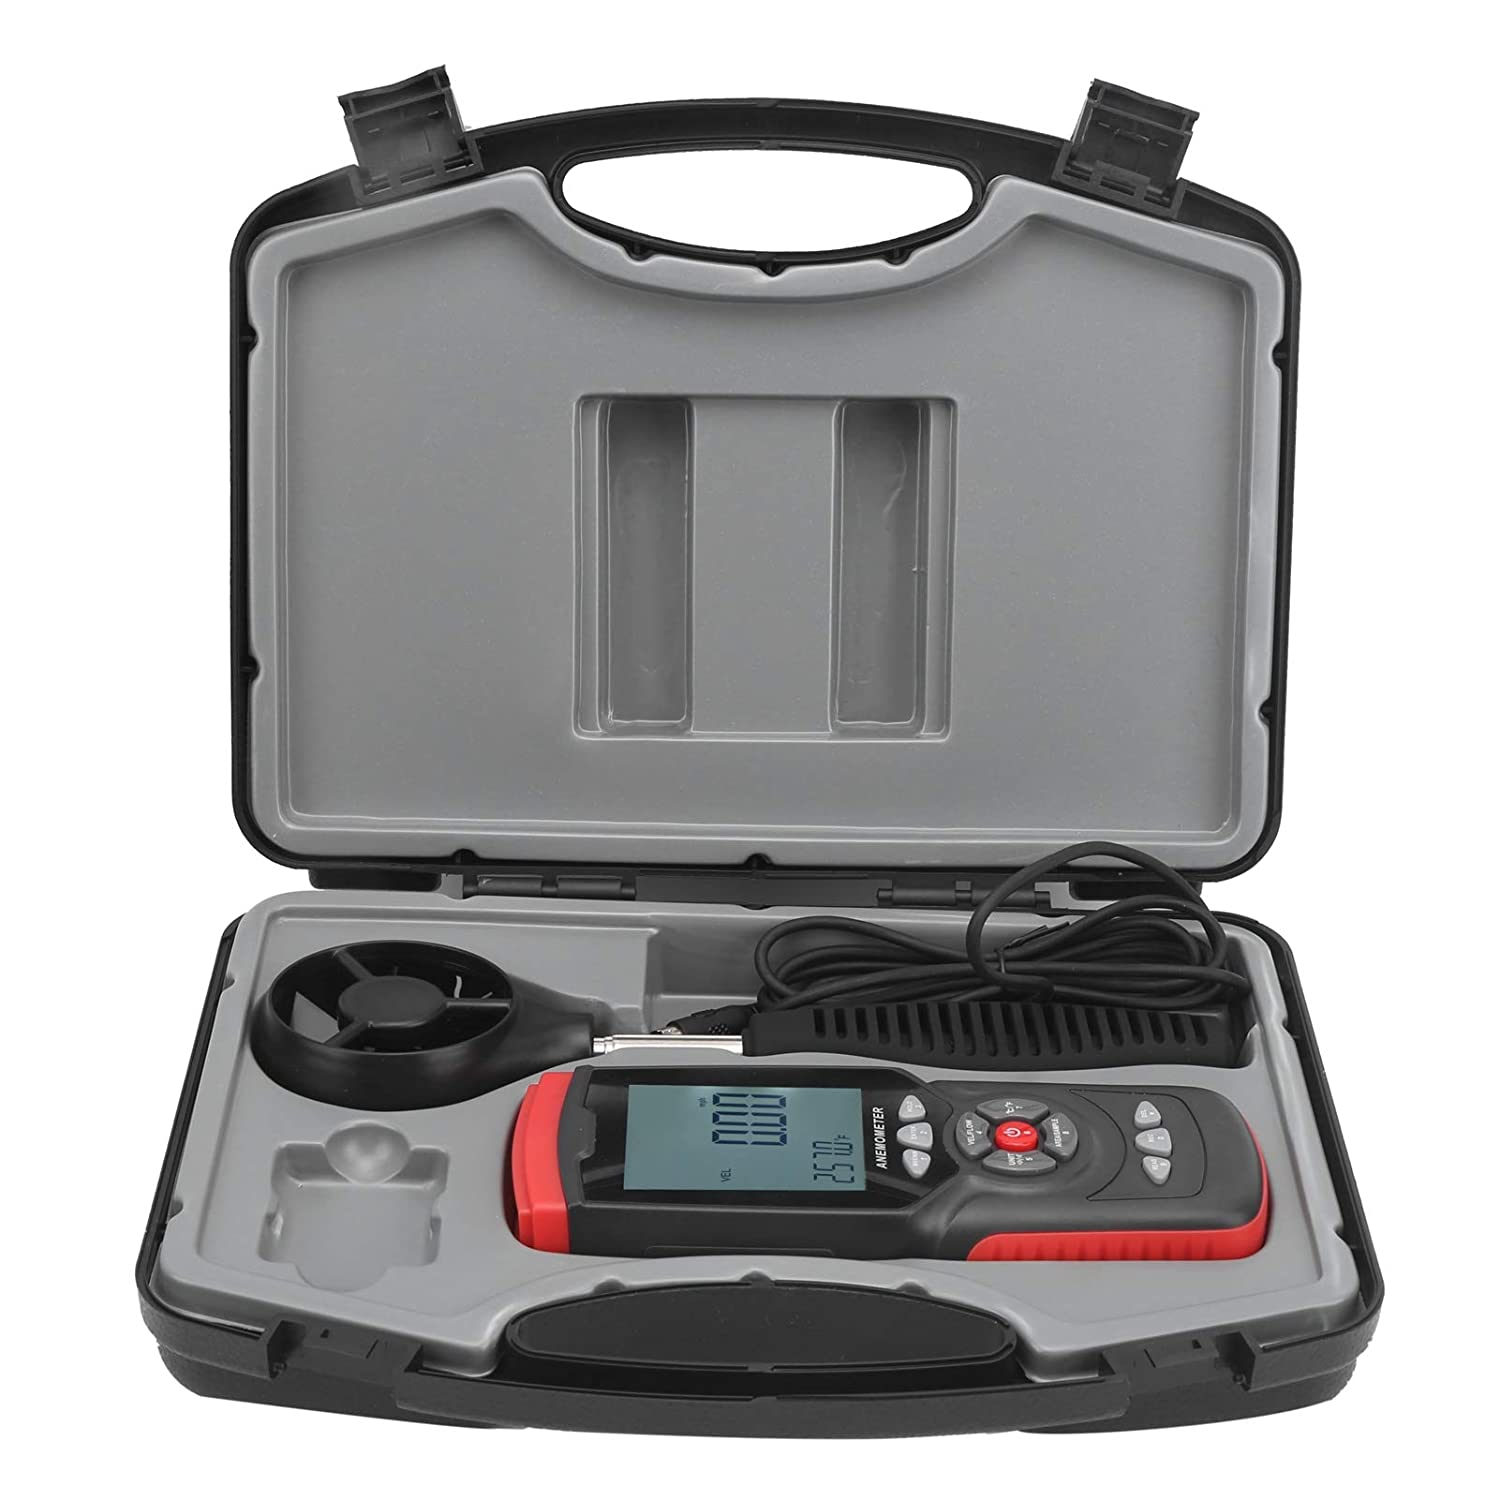 Digital Anemometer Handheld Wind Speed Meter Max 72% OFF LCD Fl Spring new work one after another Display Air